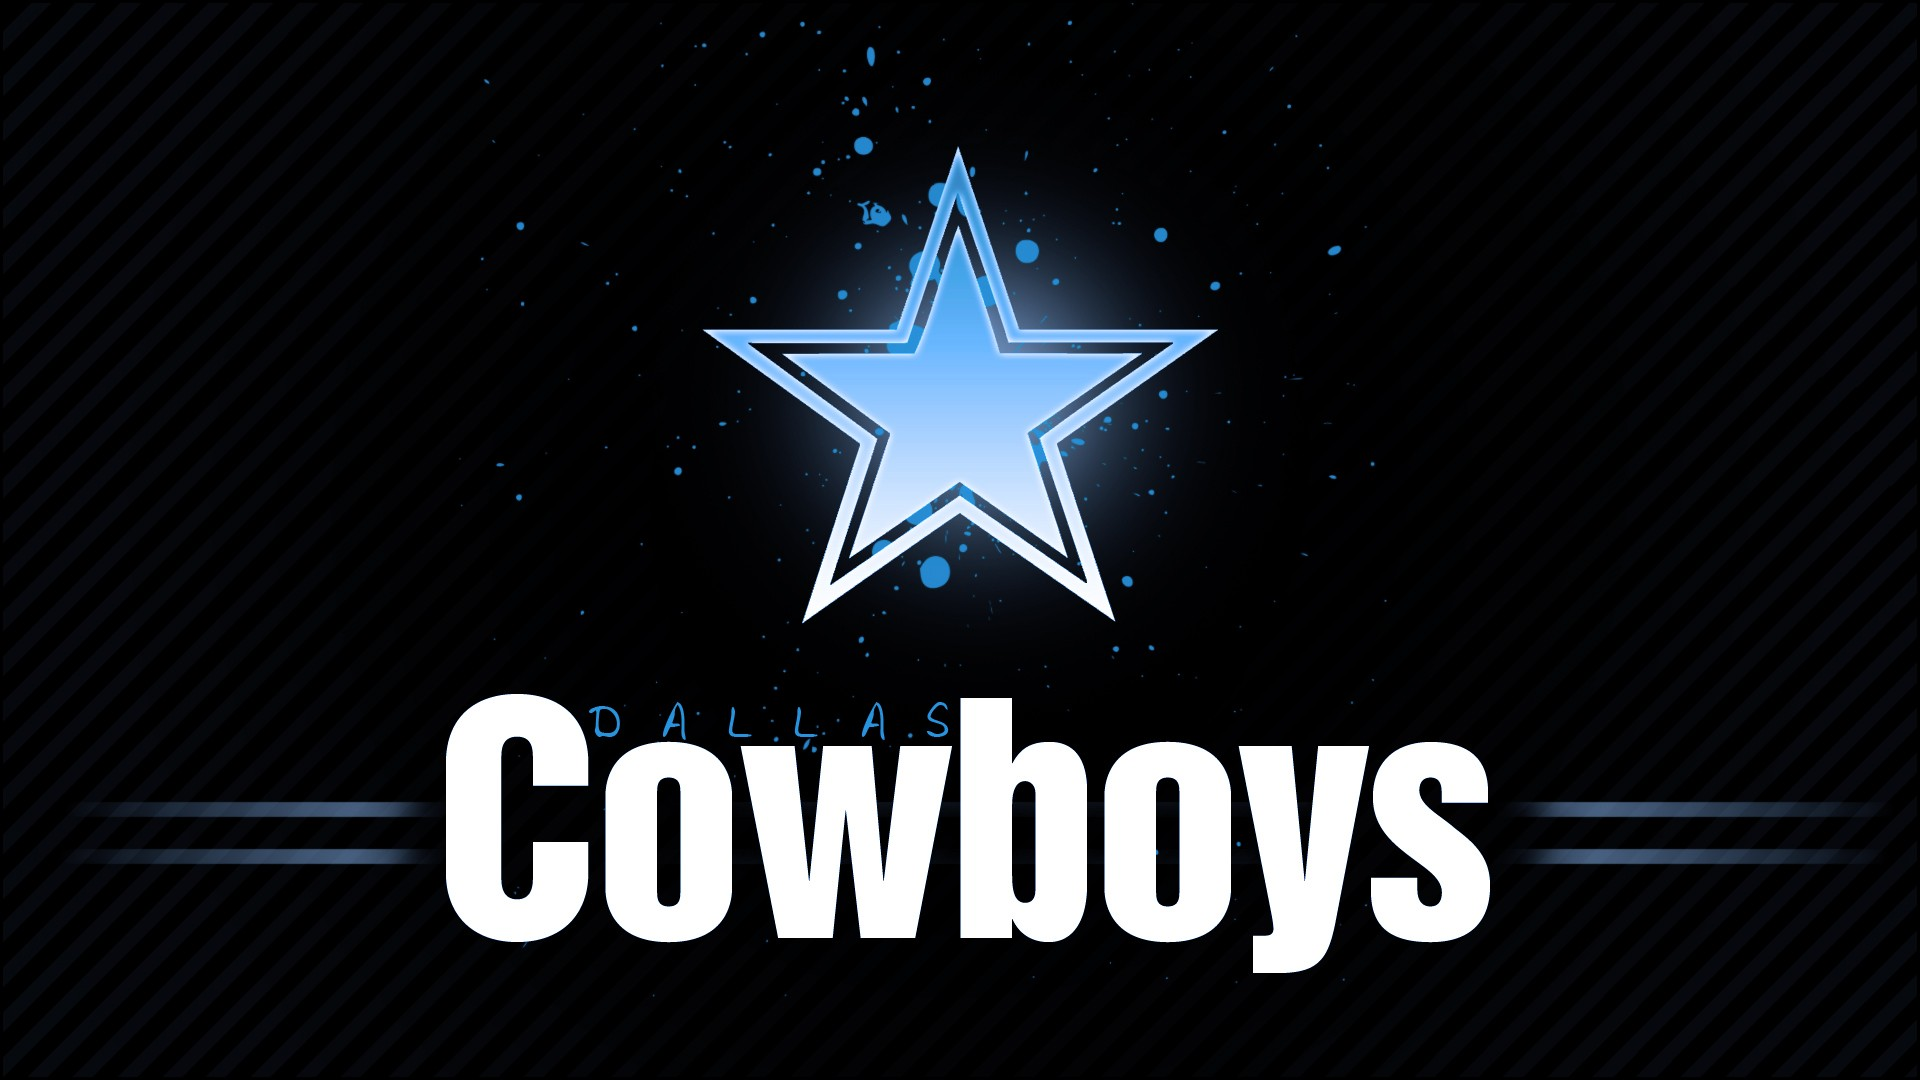 3d Dallas Cowboys Wallpapers High Definition Cool Colourful 1920x1080